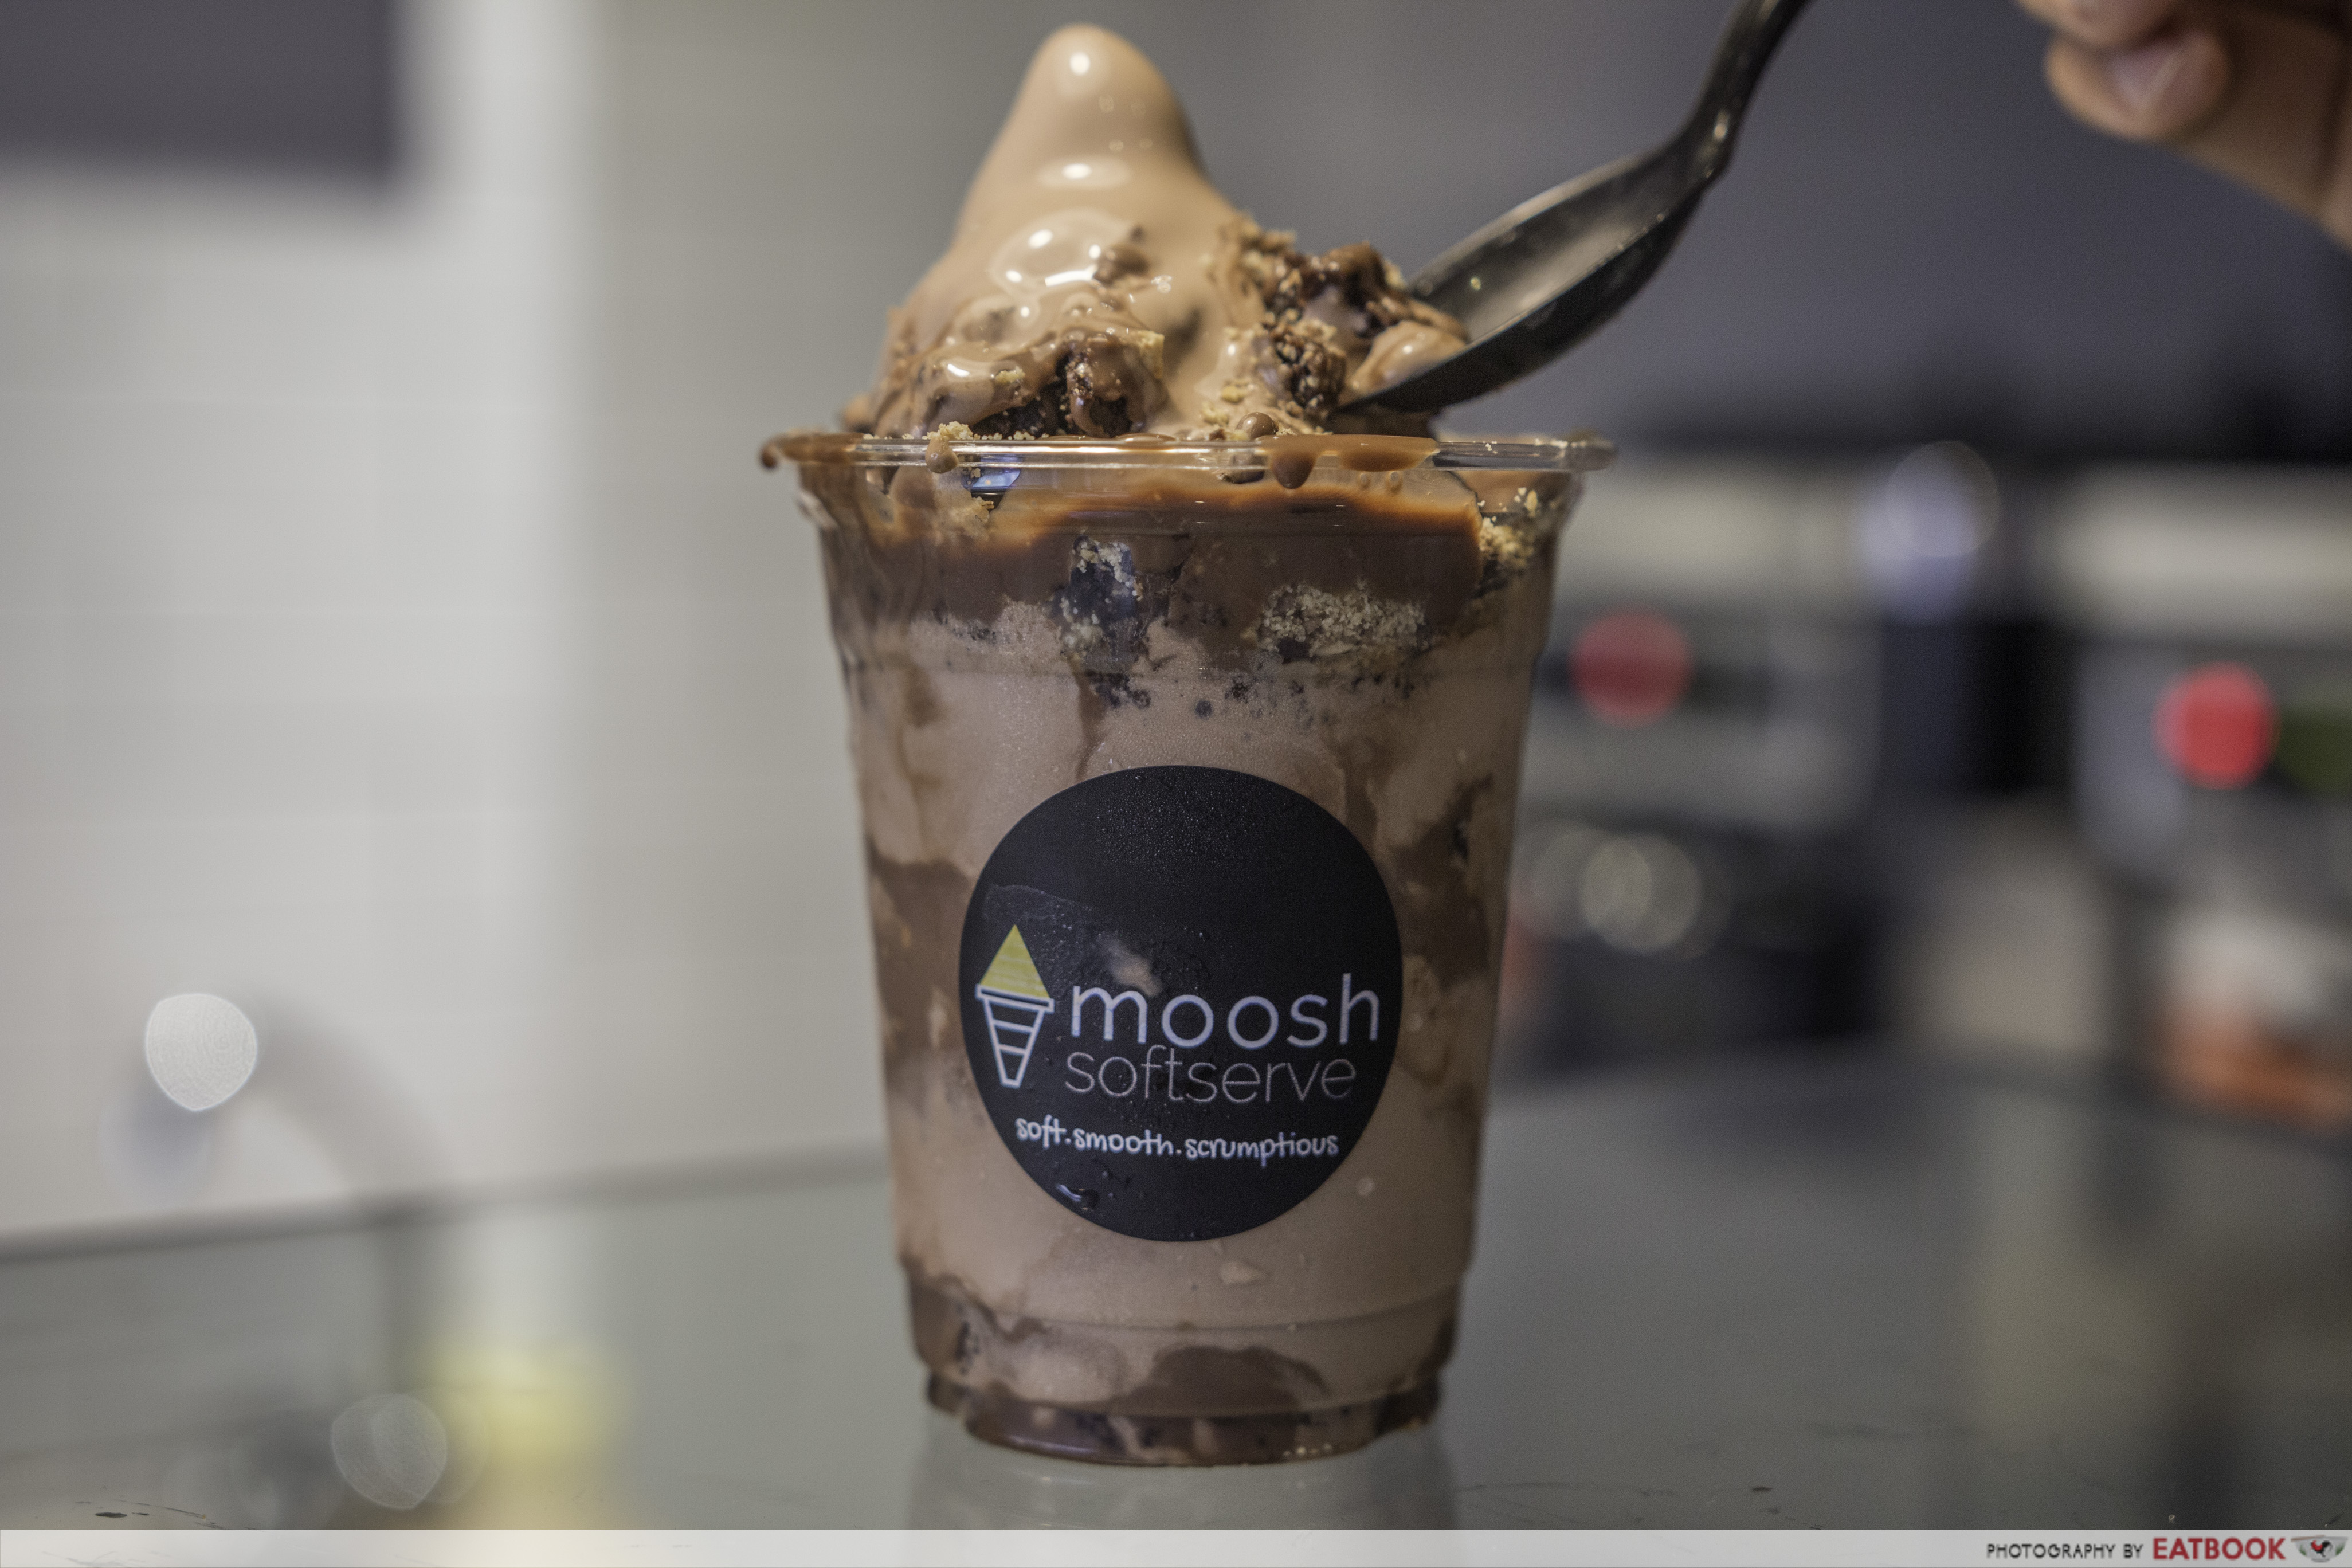 Moosh - Nutella Brownie Cheesecake Soft Serve scooping